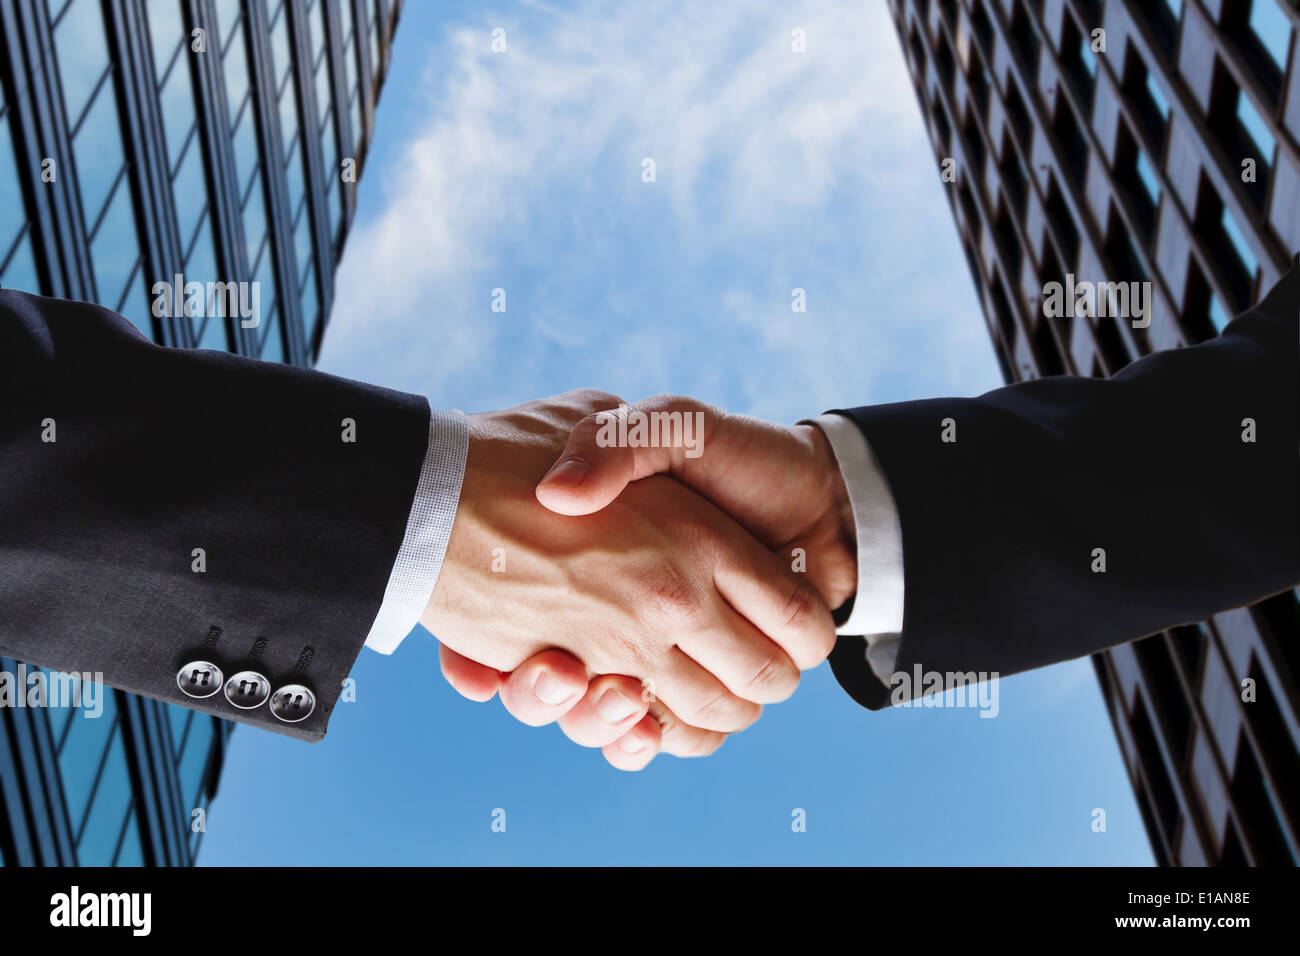 cooperation - Stock Image